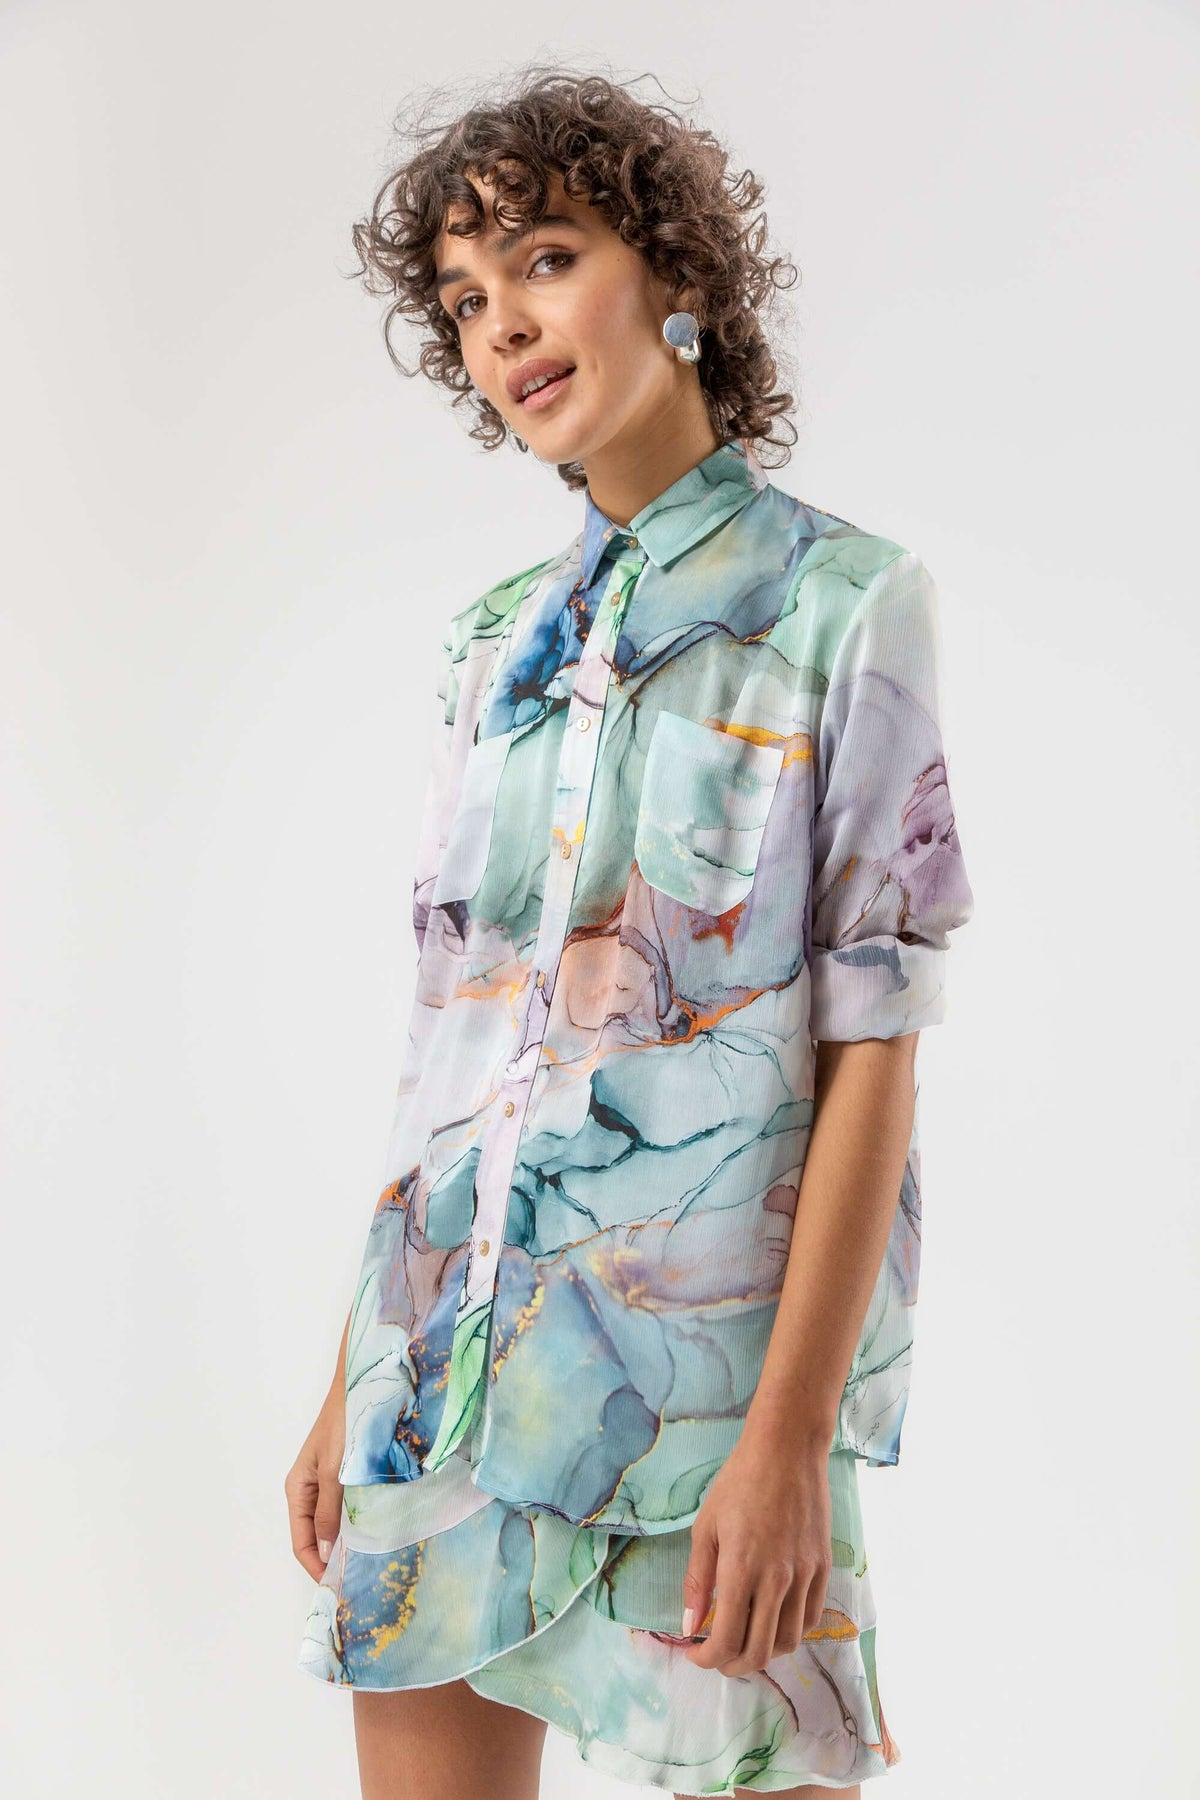 Dori shirt in aquarelle print